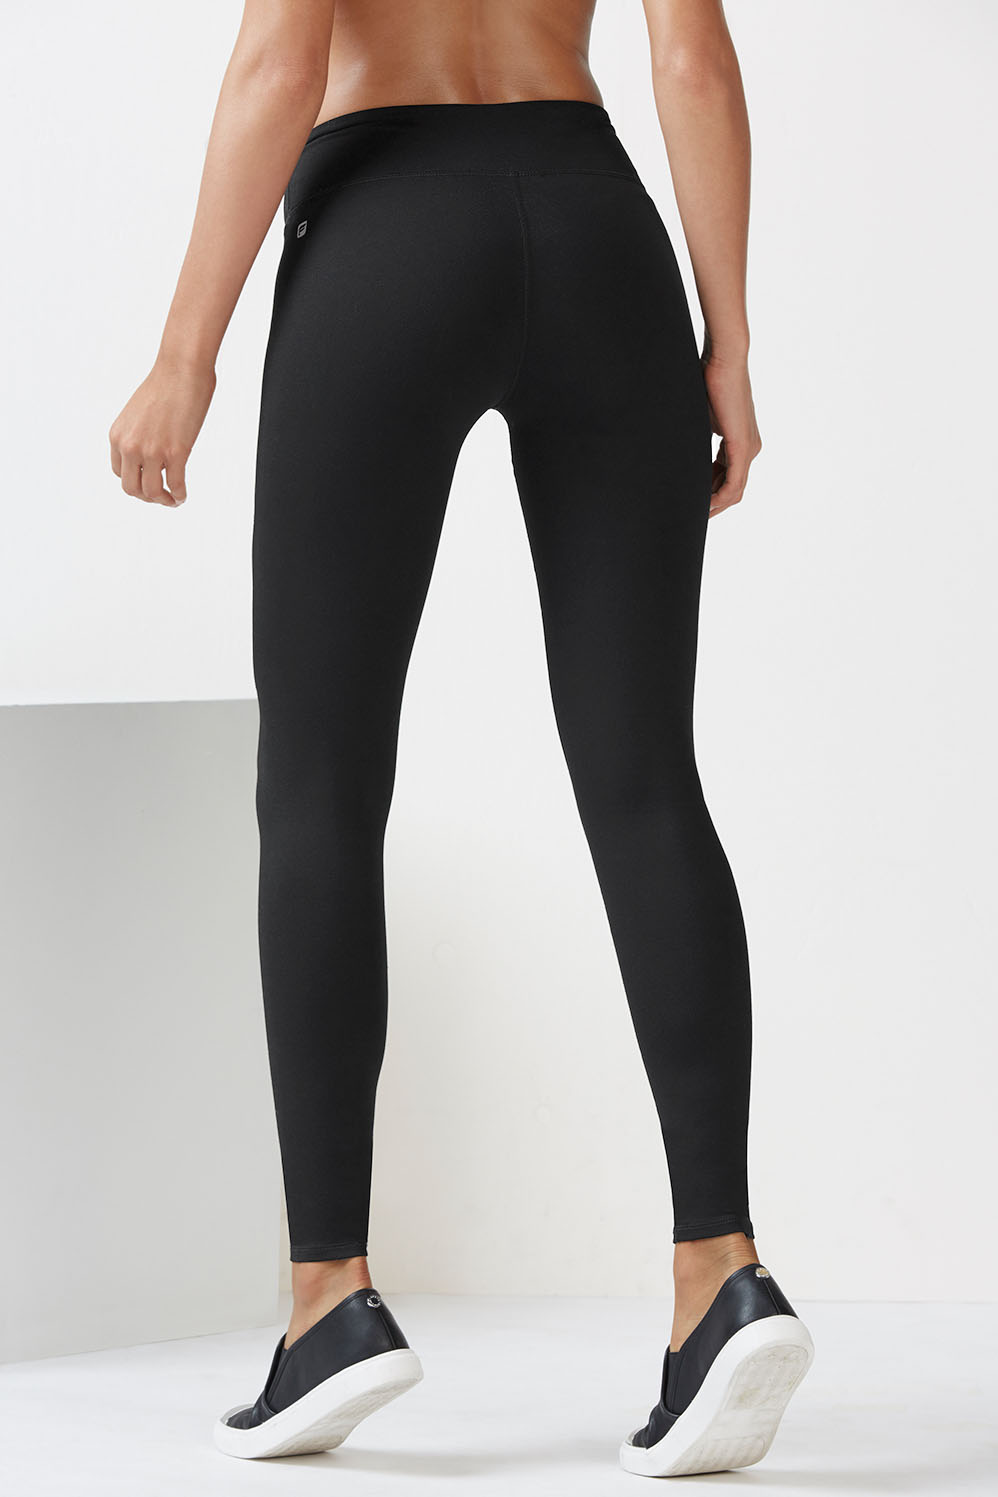 Salar Legging in black